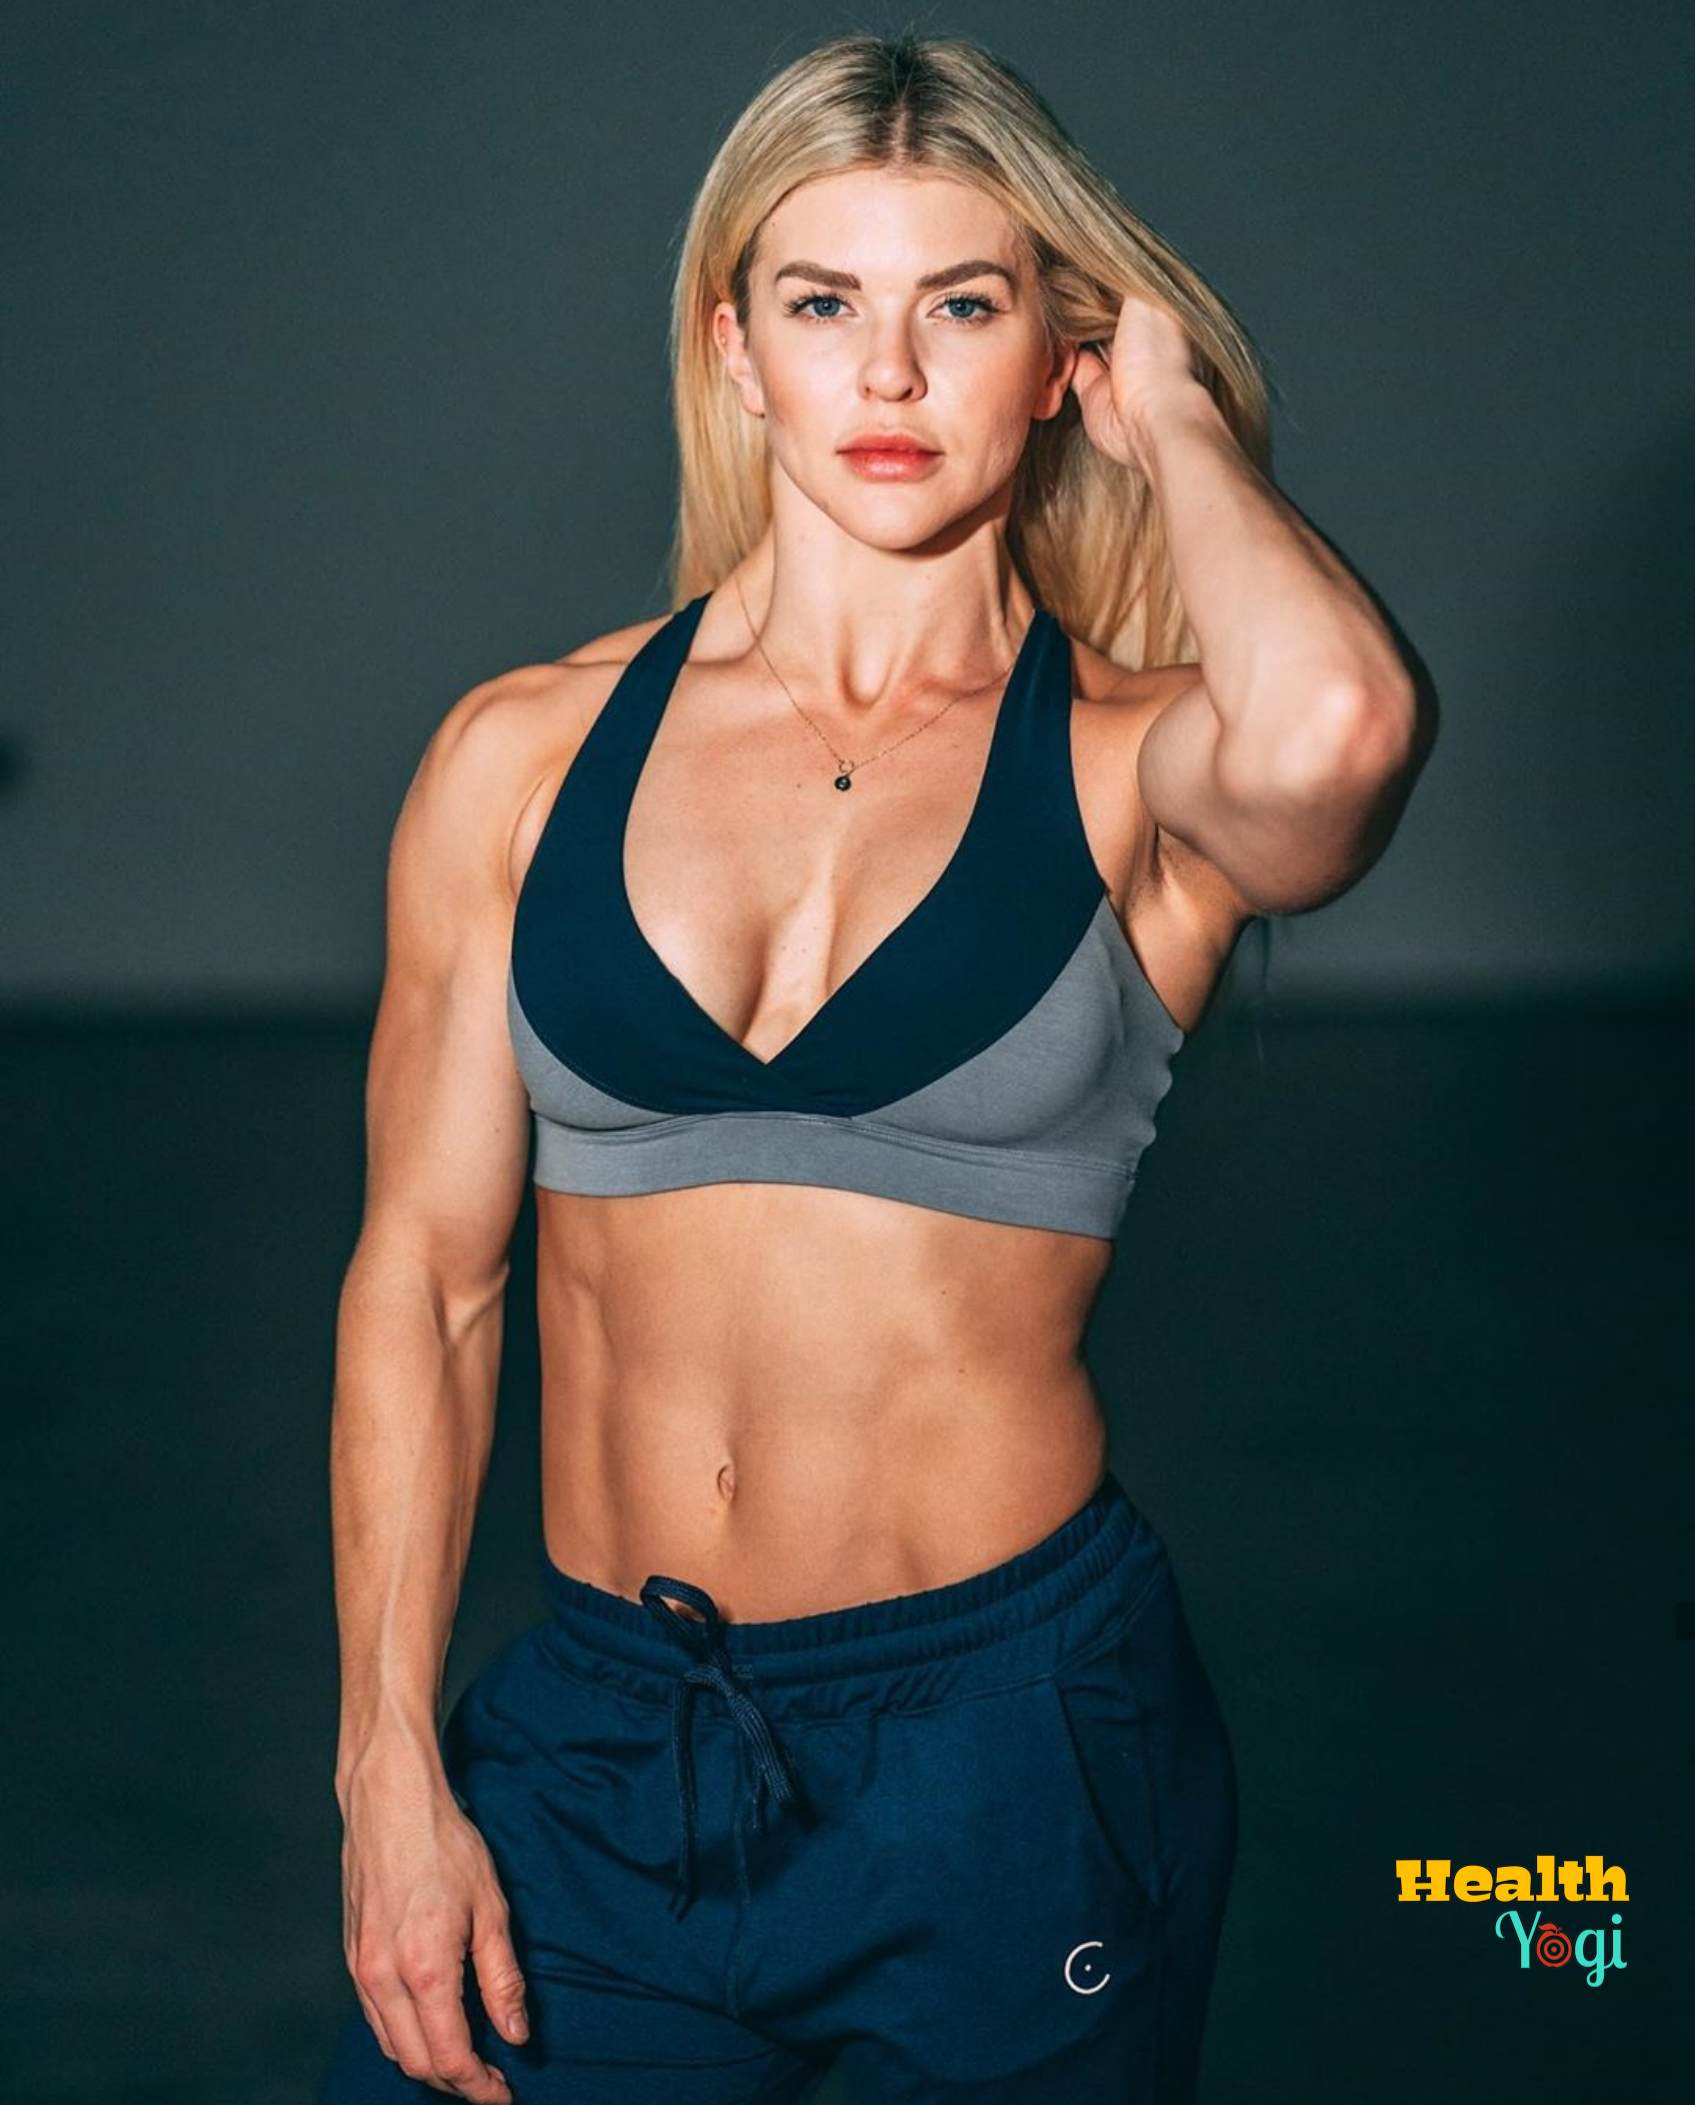 Brooke Ence Workout Routine and Diet Plan